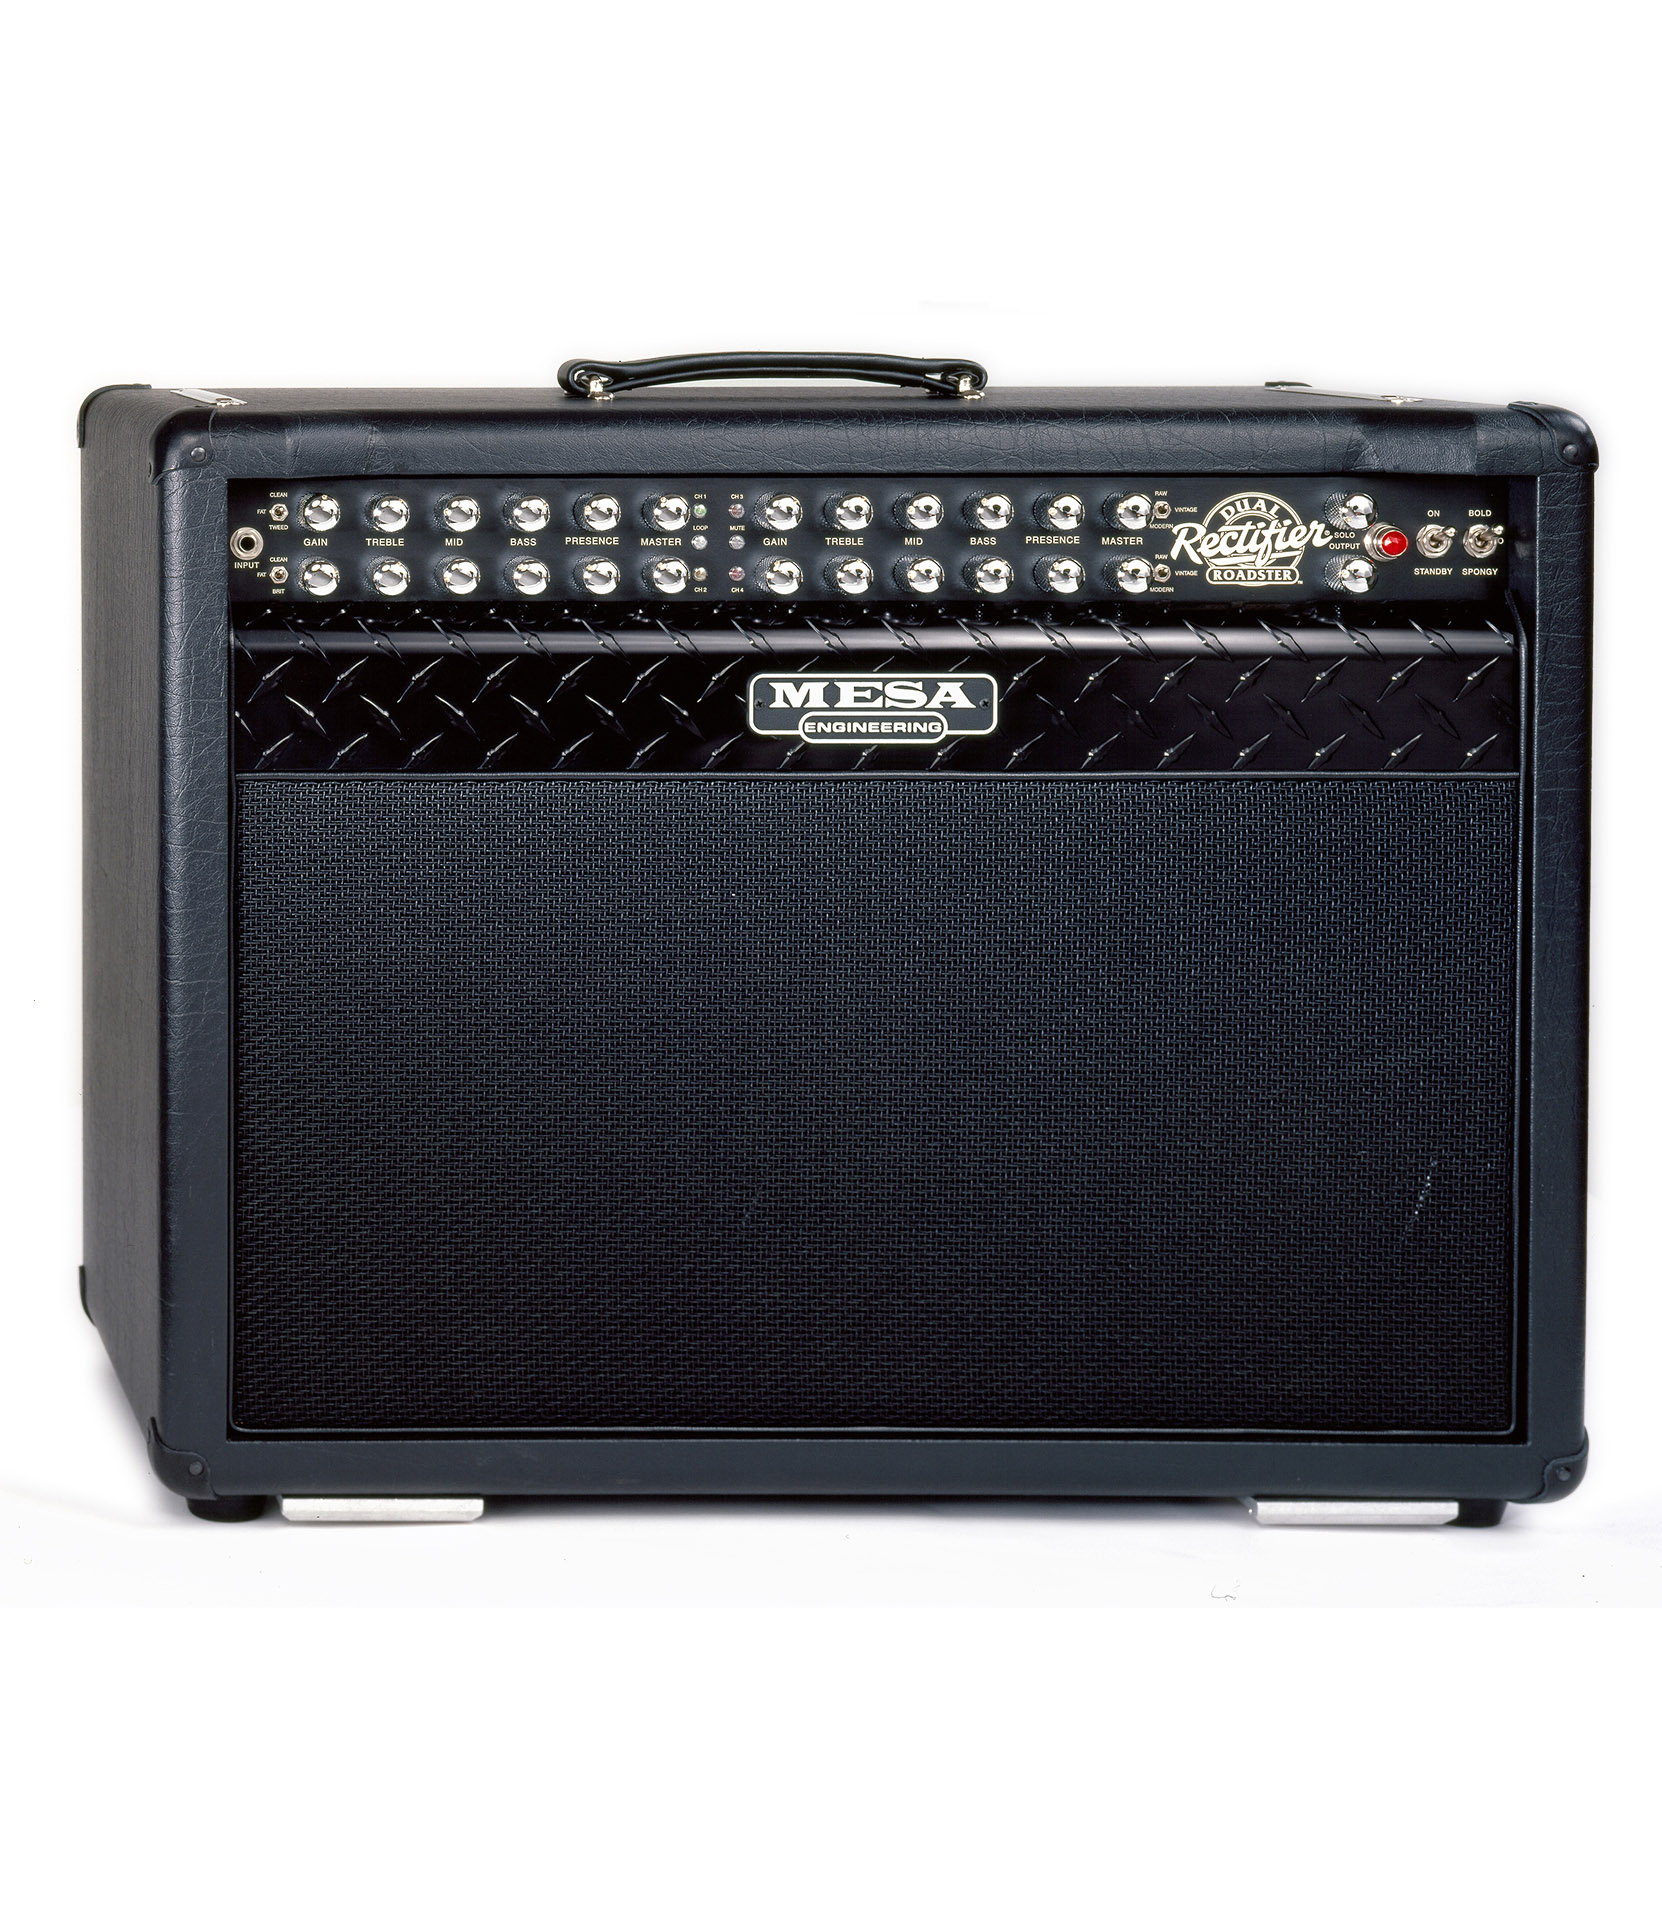 Melody House Musical Instruments Store - 2x12 Roadster Closed Back Combo